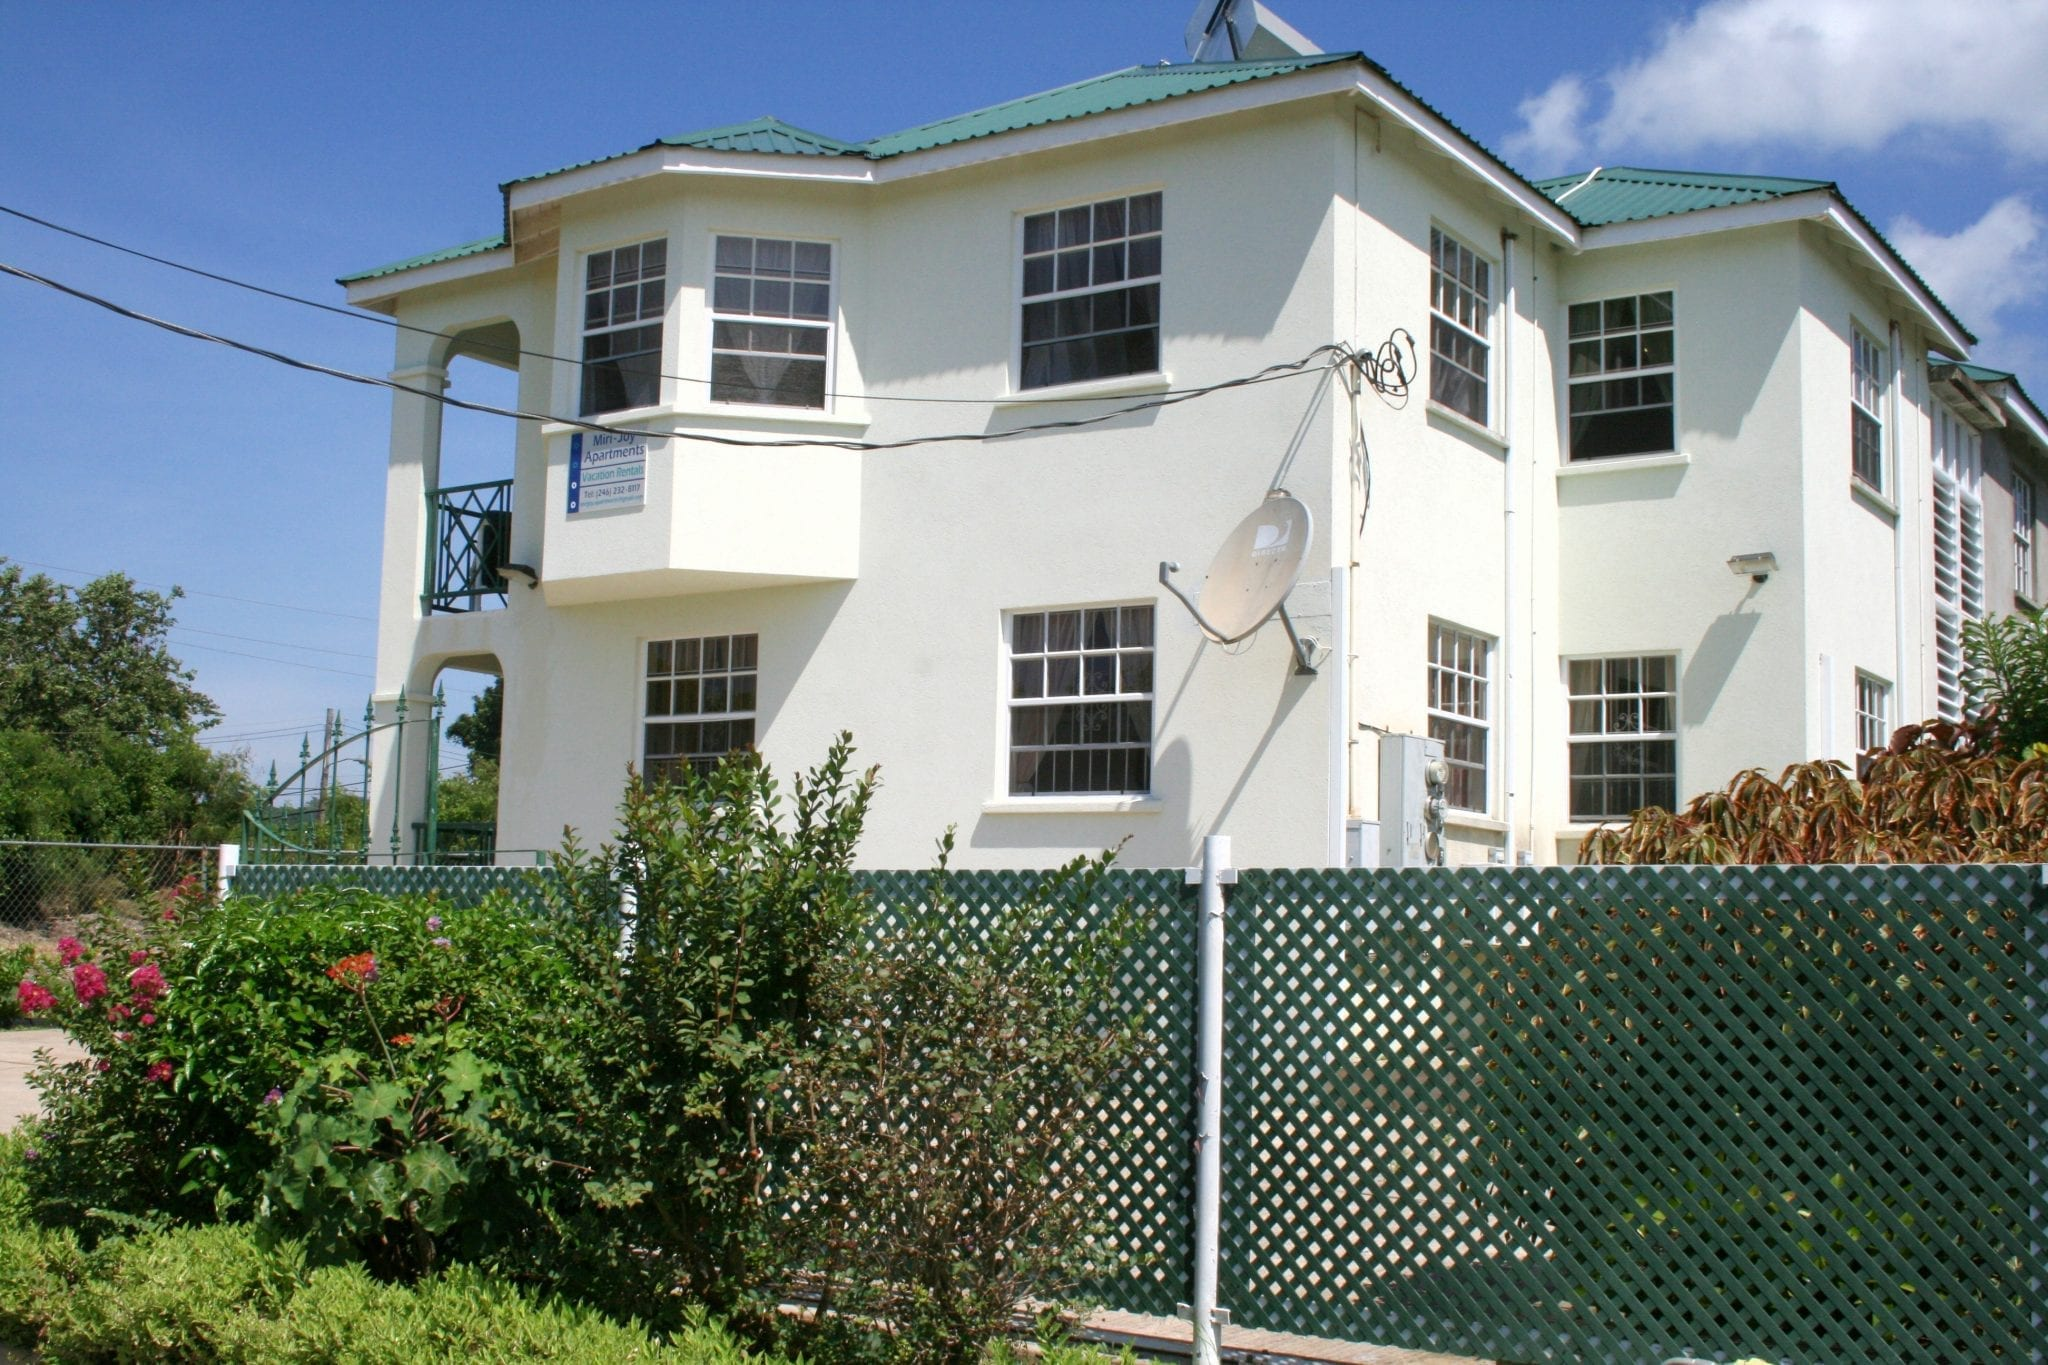 Miri-Joy Apartments Barbados - your ideal location, in a local community for a tranquil Caribbean vacation.